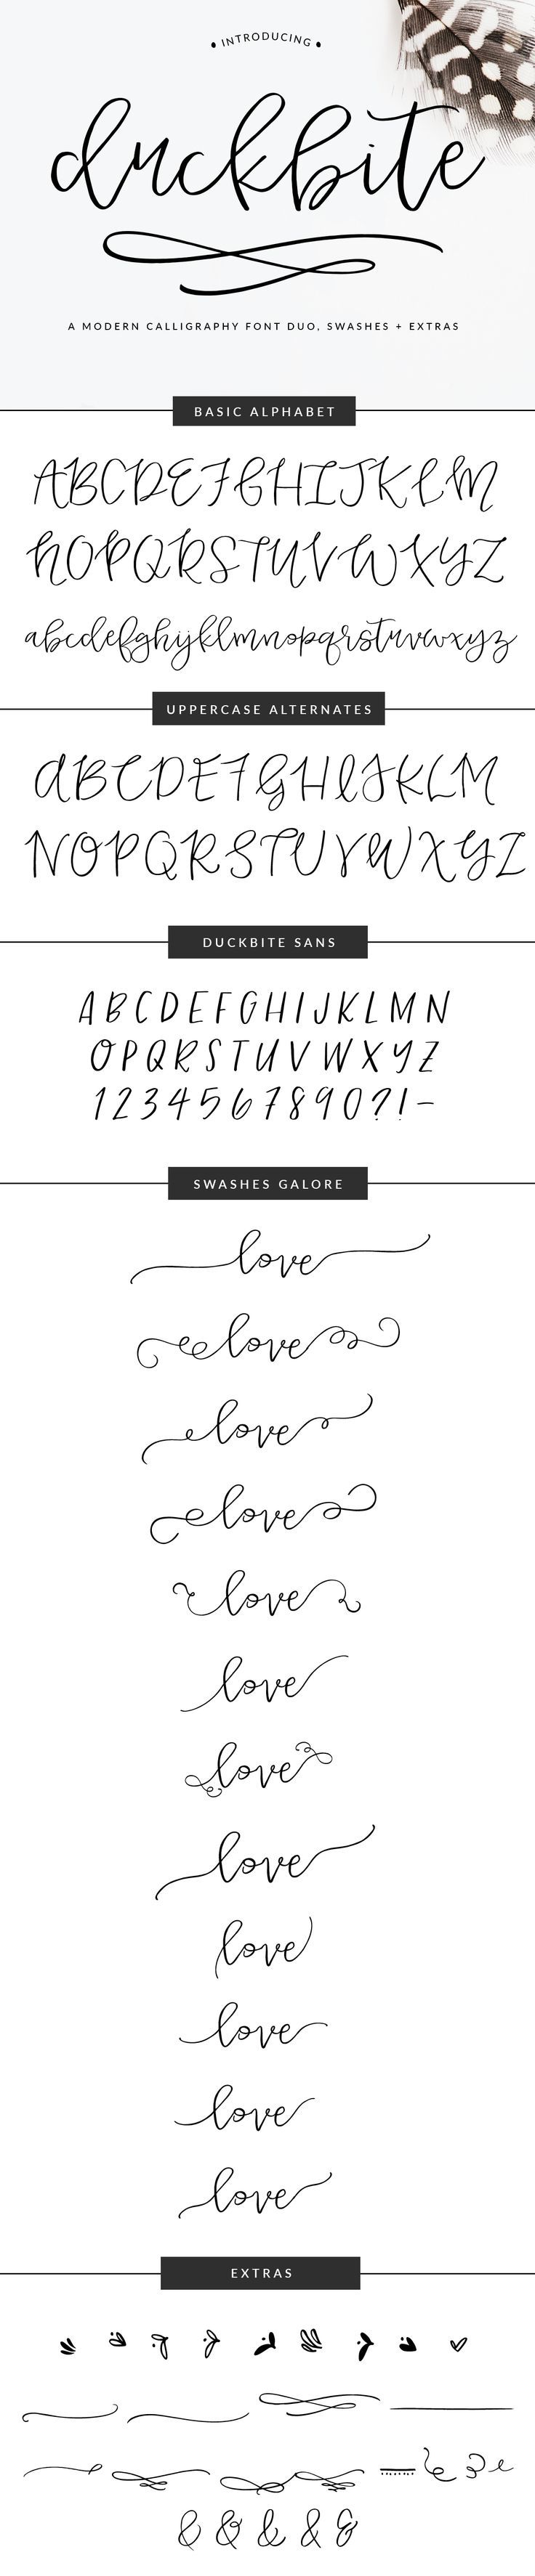 Meet Duckbite... a lovely hand drawn calligraphy font design. Perfect for wedding invitations, personal branding, and more! So many fun swirls and swashes to add to the font's letters too.